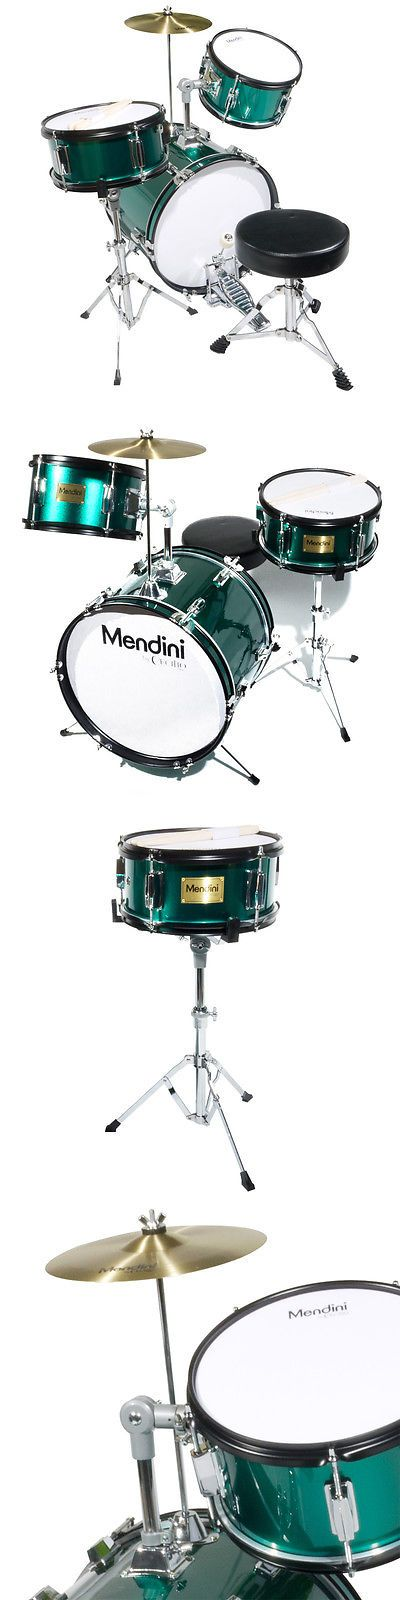 Music And Art 11735 Mendini 16 Junior Kids Child Jr Drum Set Kit